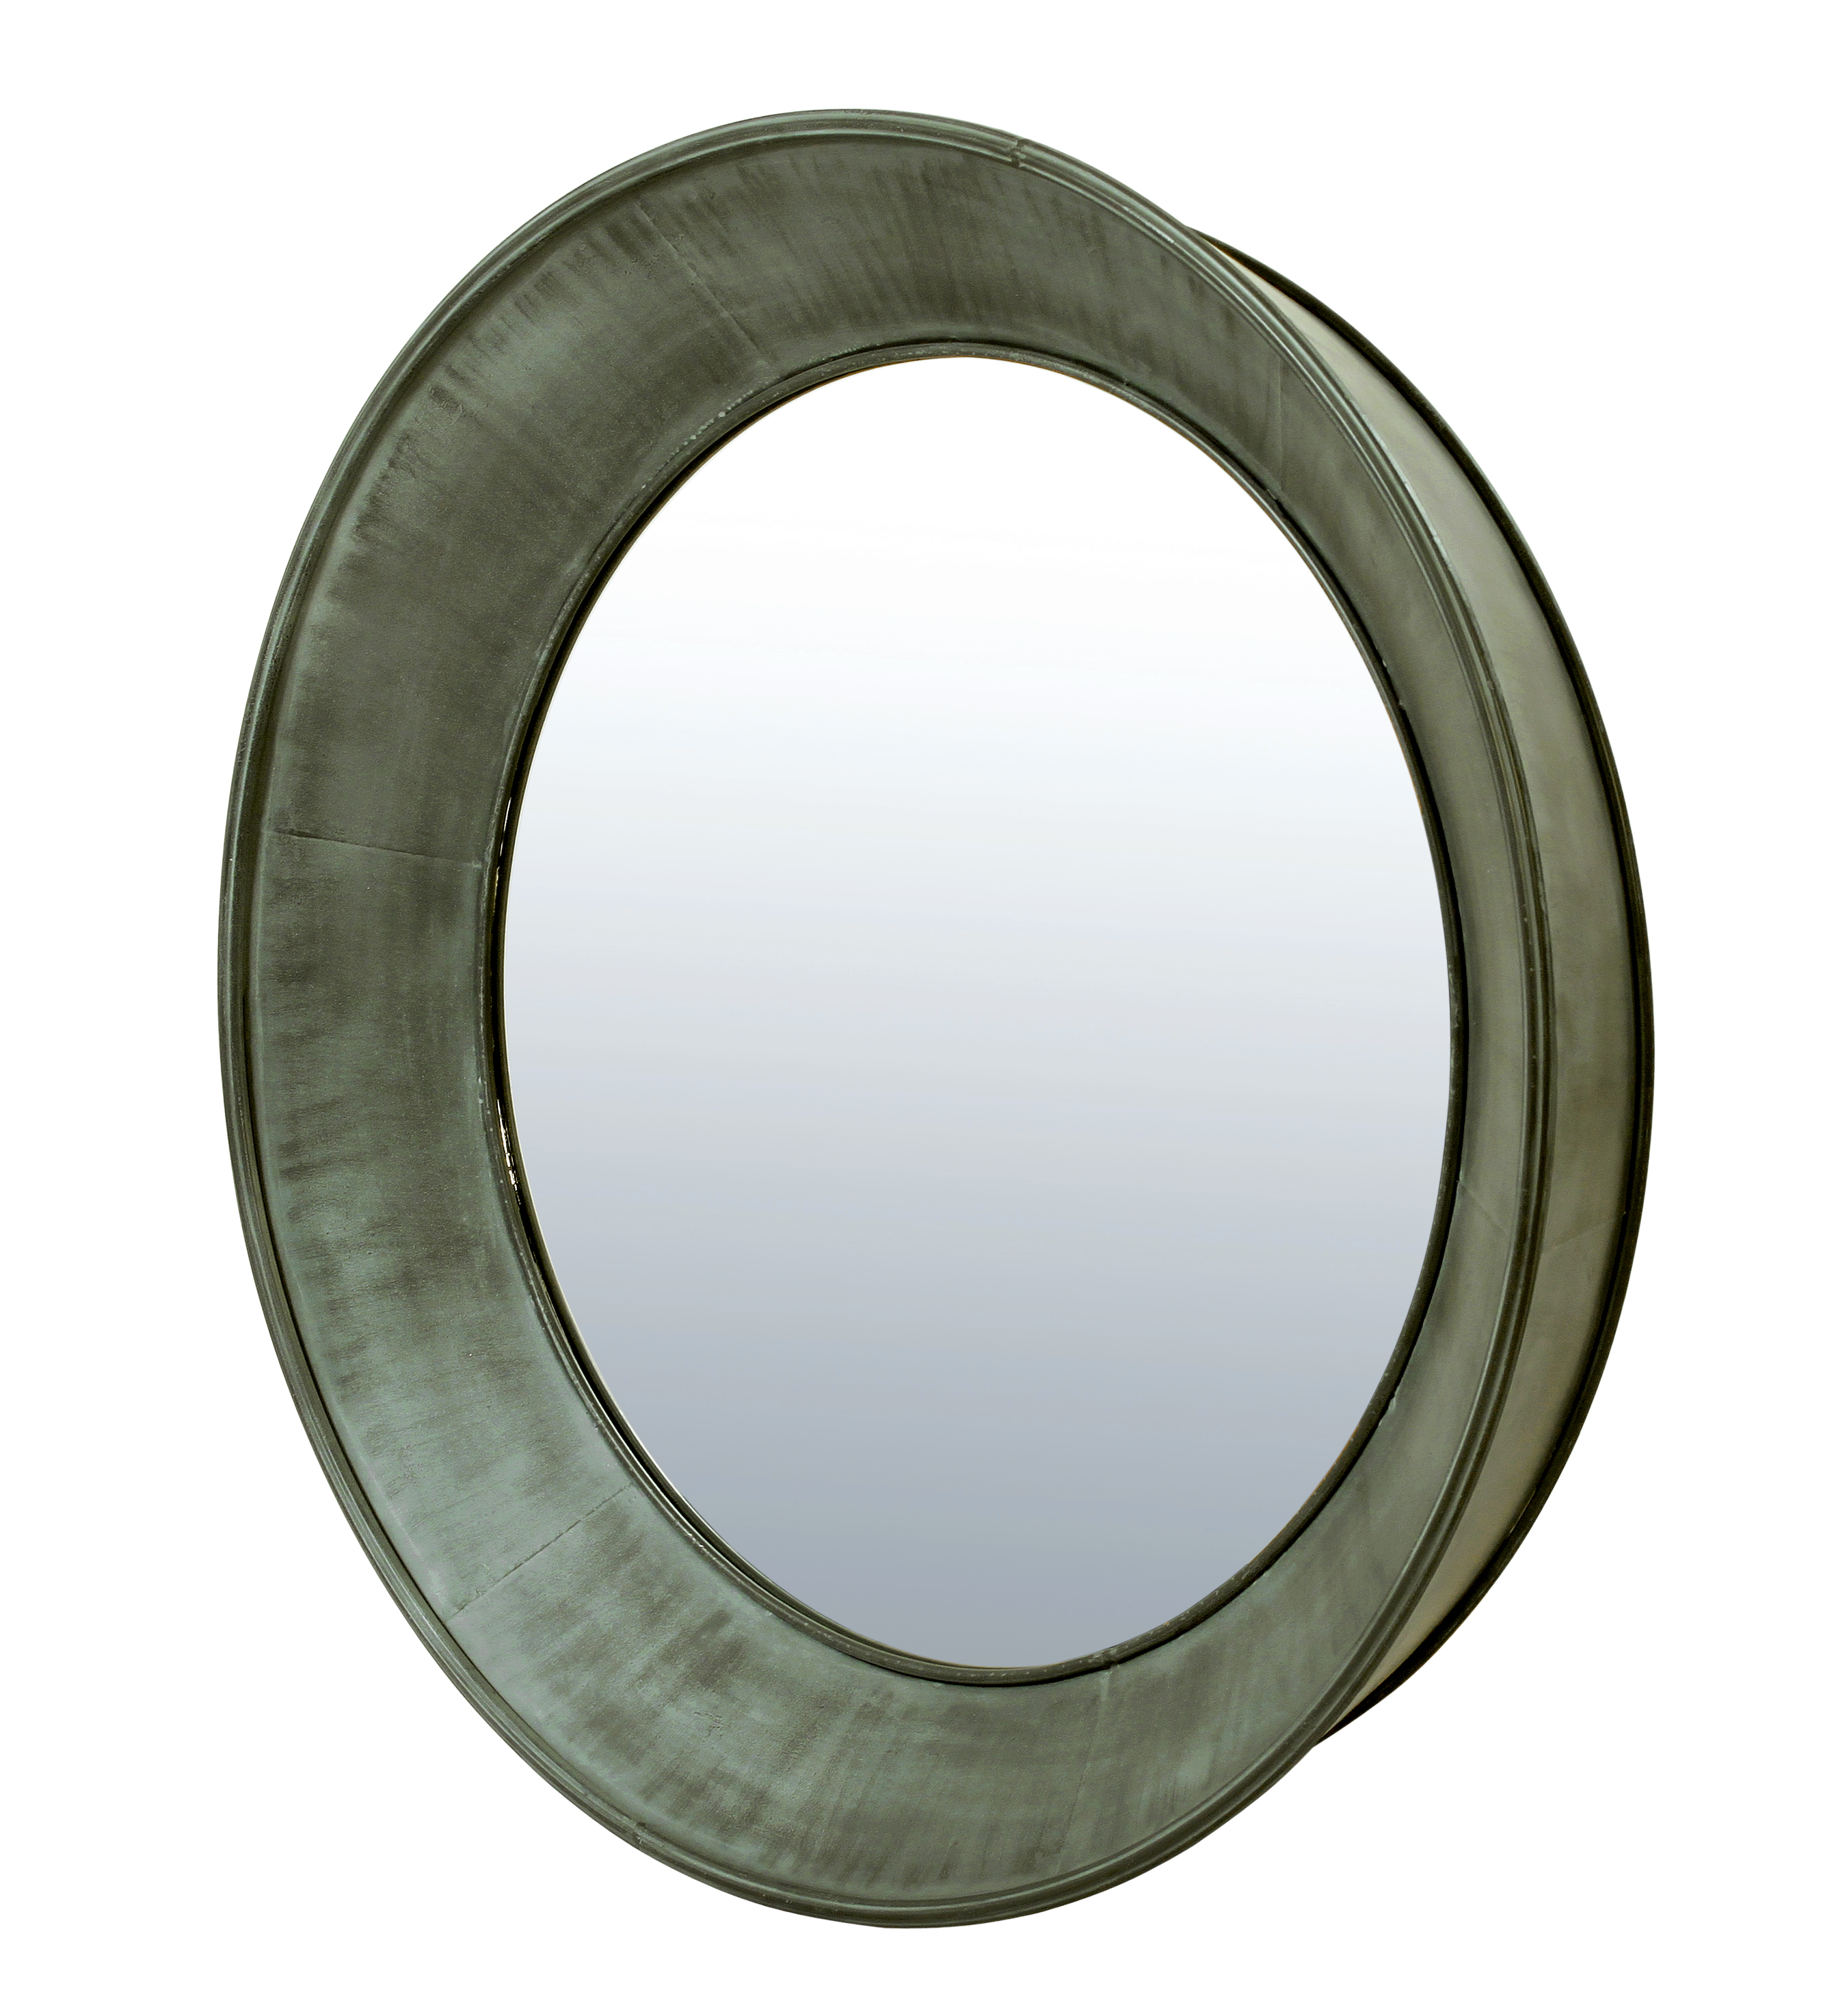 Belgian Luxe Zinc Wall Mirror by Bassett Mirror at Alison Craig Home Furnishings